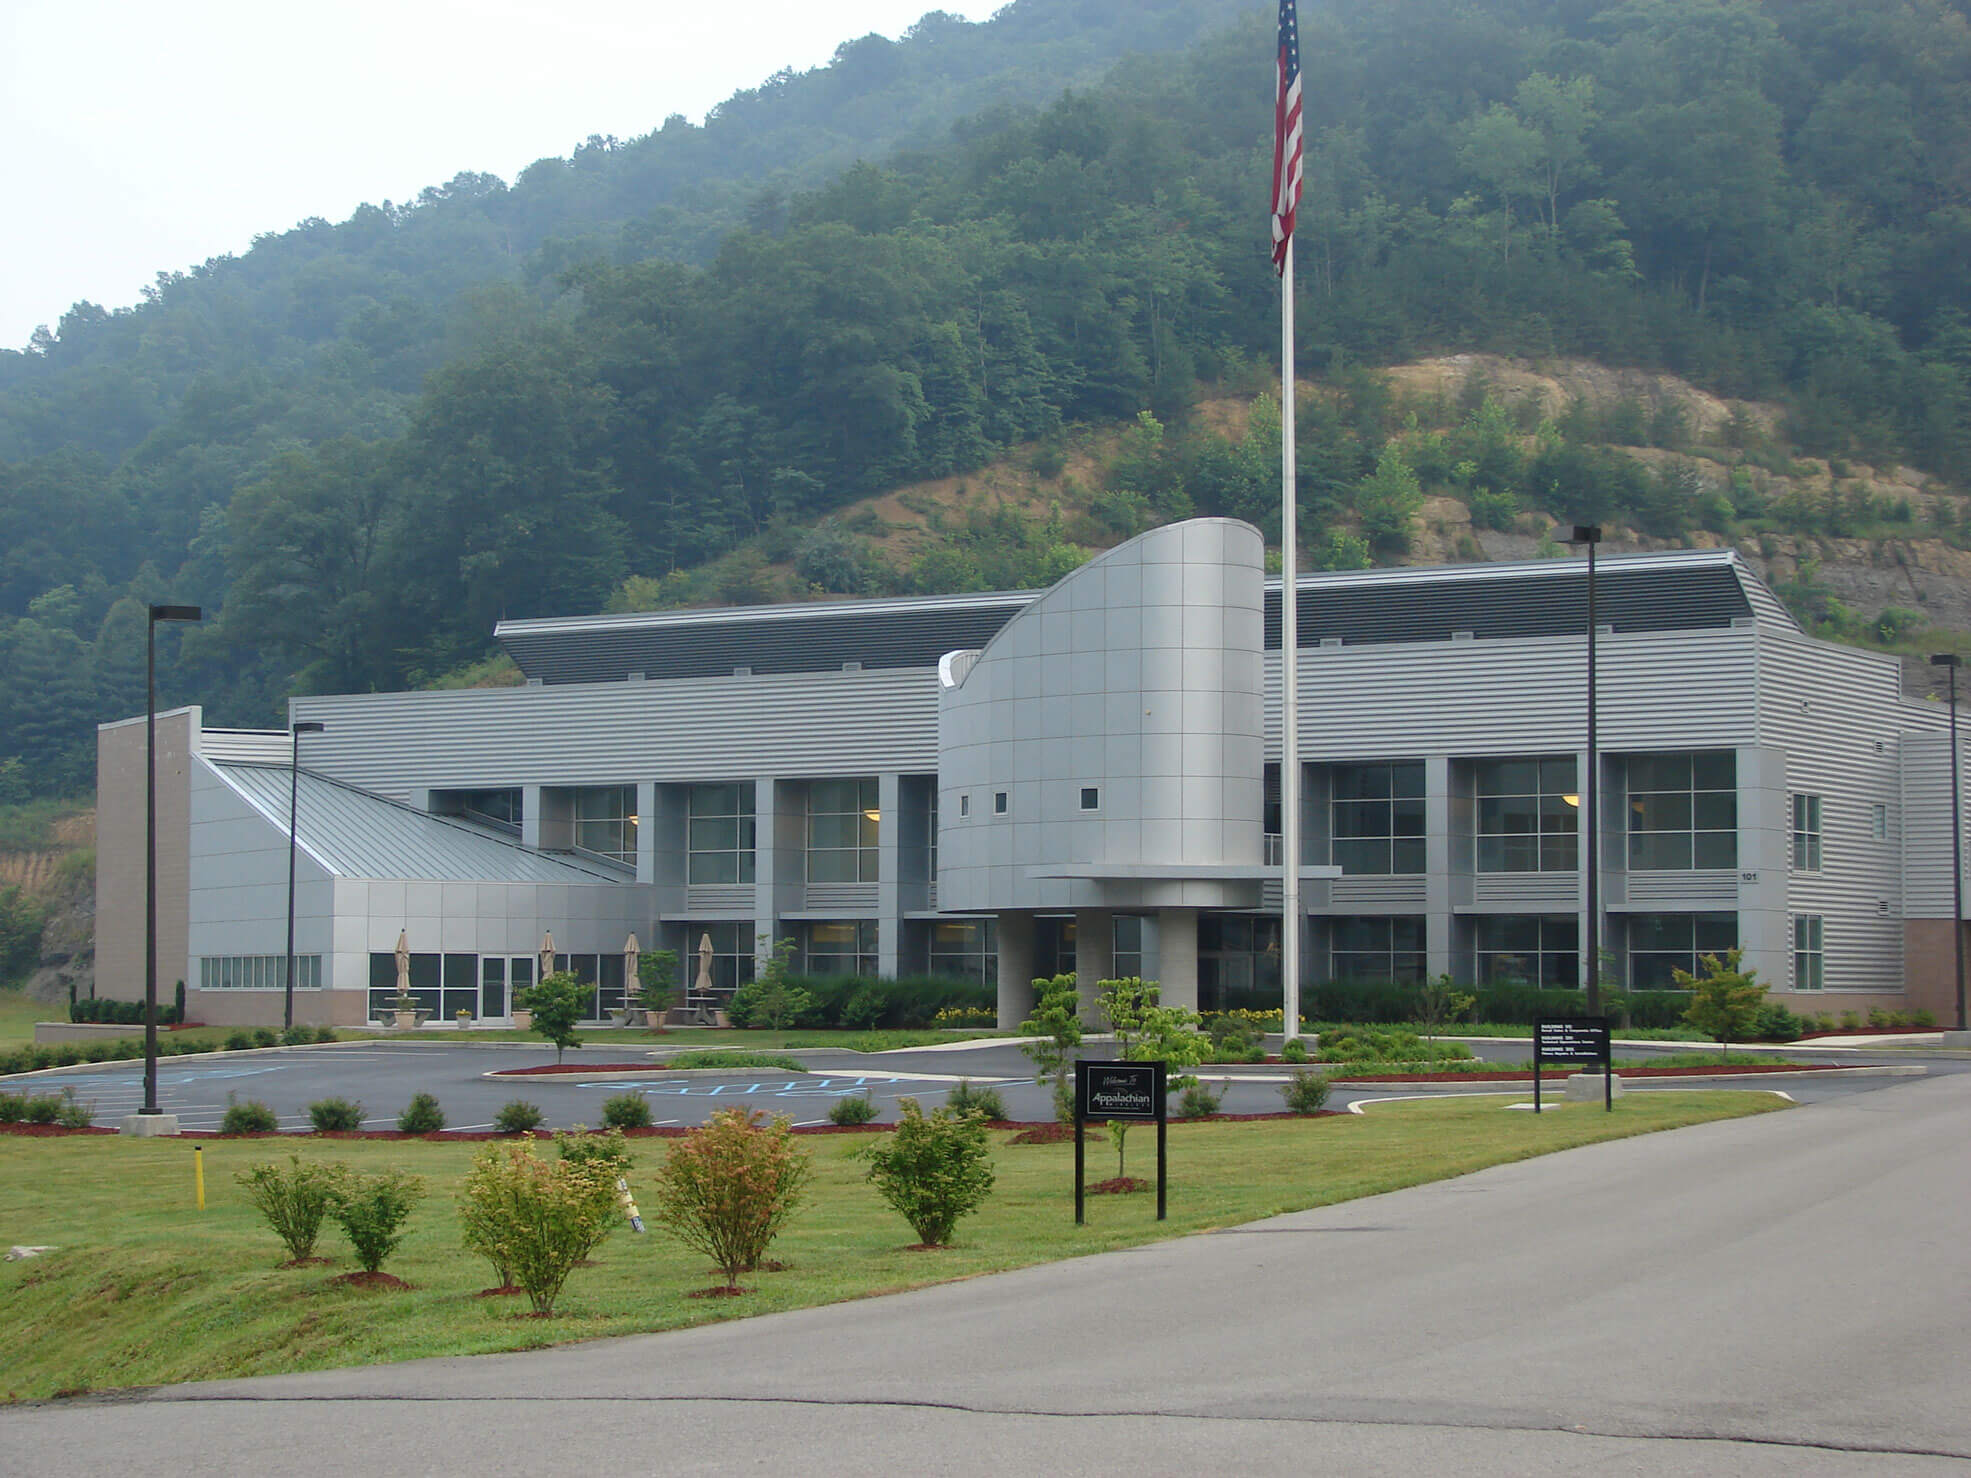 Appalachian Wireless HQ in Ivel, KY